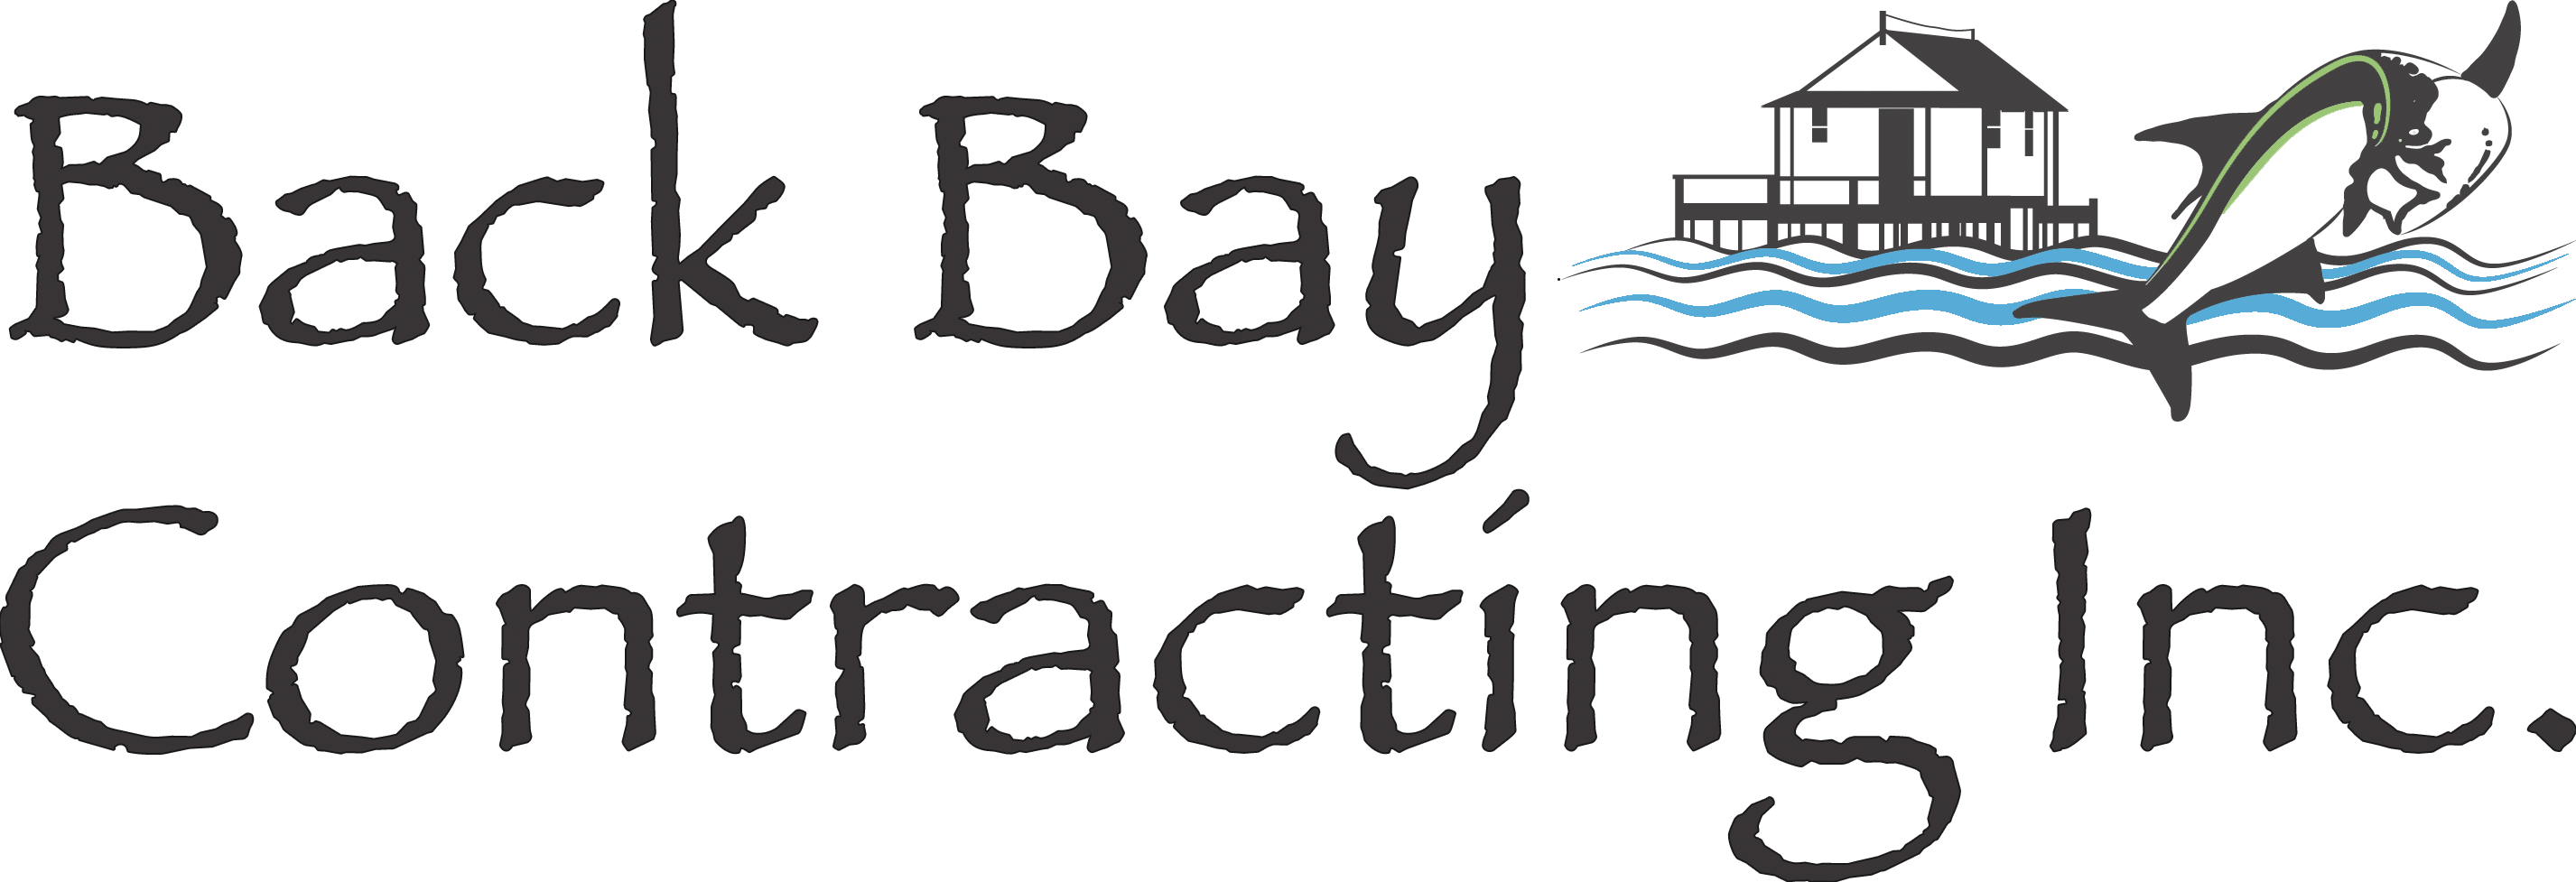 Back Bay Contracting